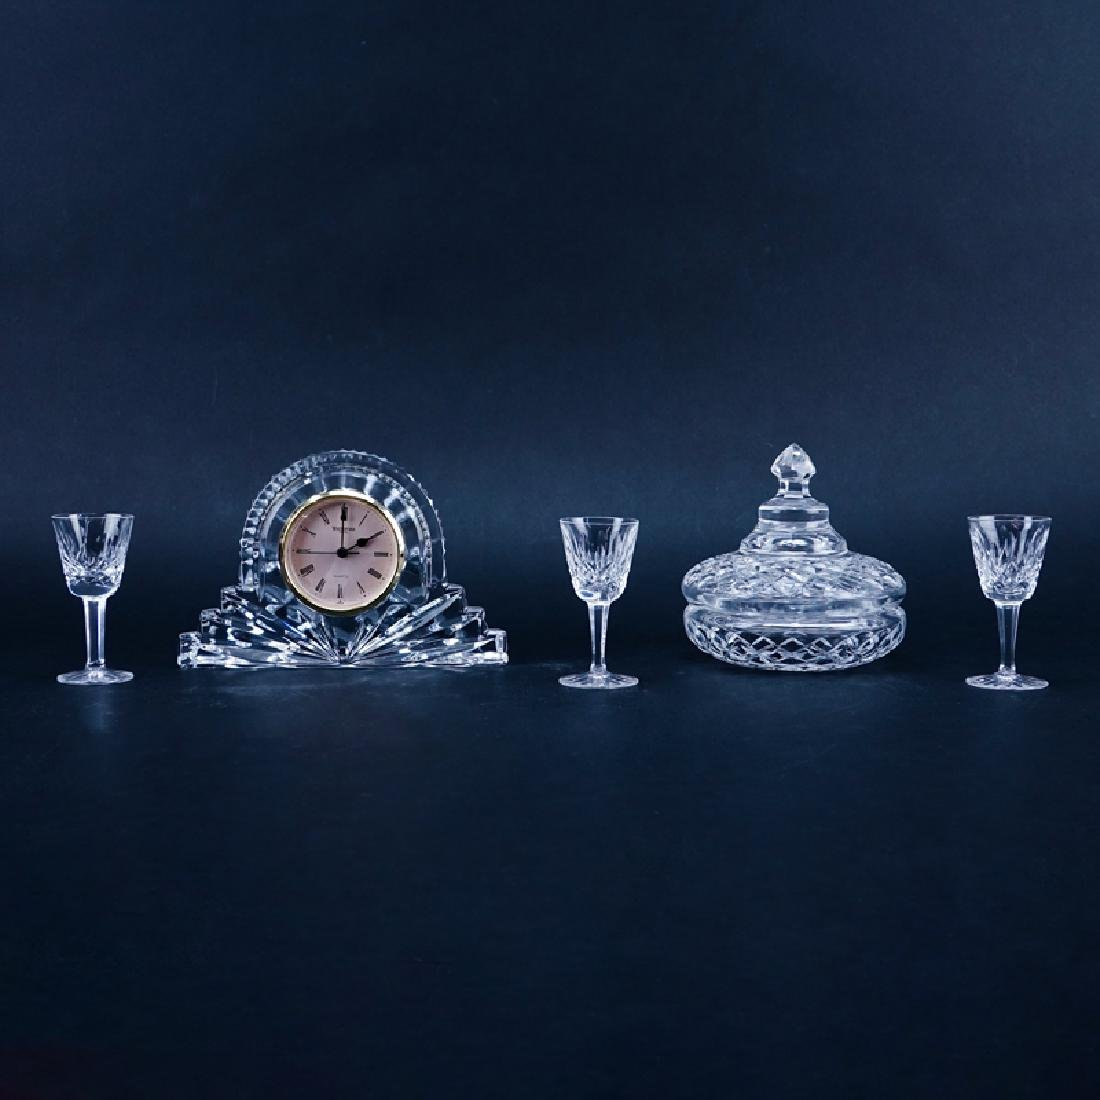 Collection of Five (5) Waterford Crystal Tableware